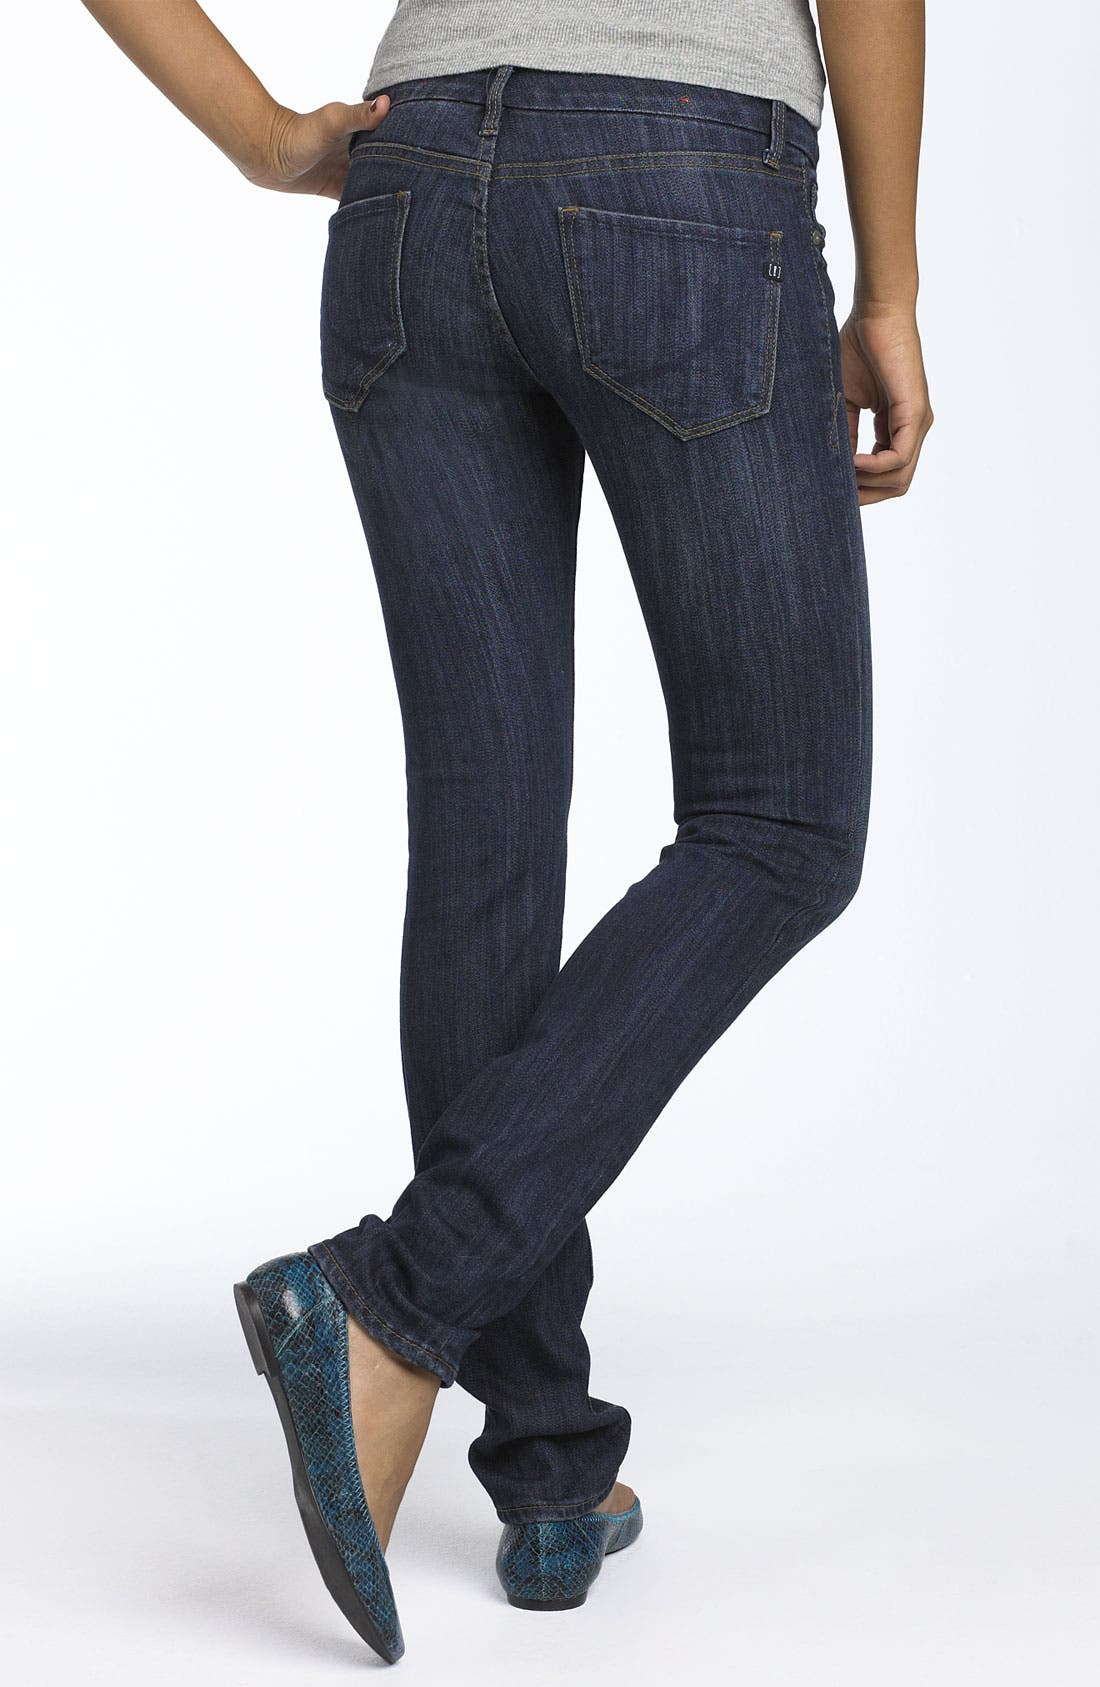 Main Image - !iT JEANS 'Rising Starlet' Skinny Stretch Jeans (Juniors)